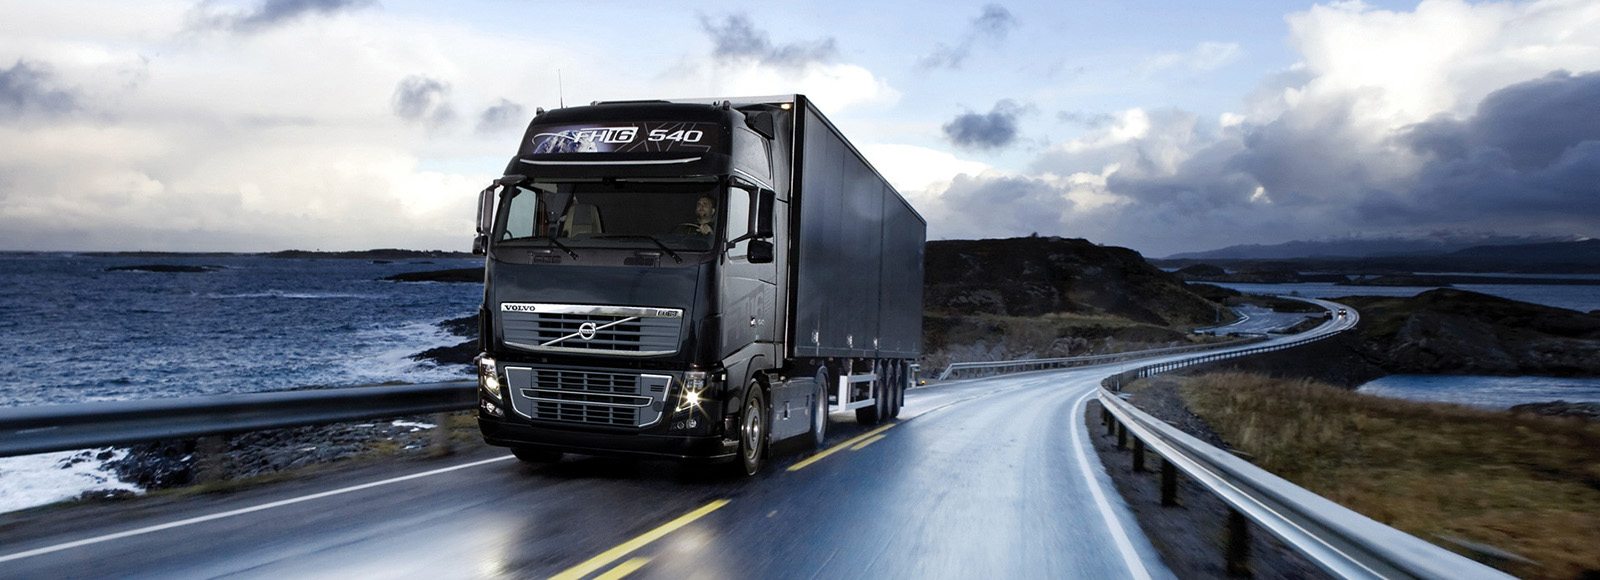 volvo-trucks-cars-volvo-trucks-wallpapers-gallery-free-download-cars-images-volvo-wallpapers